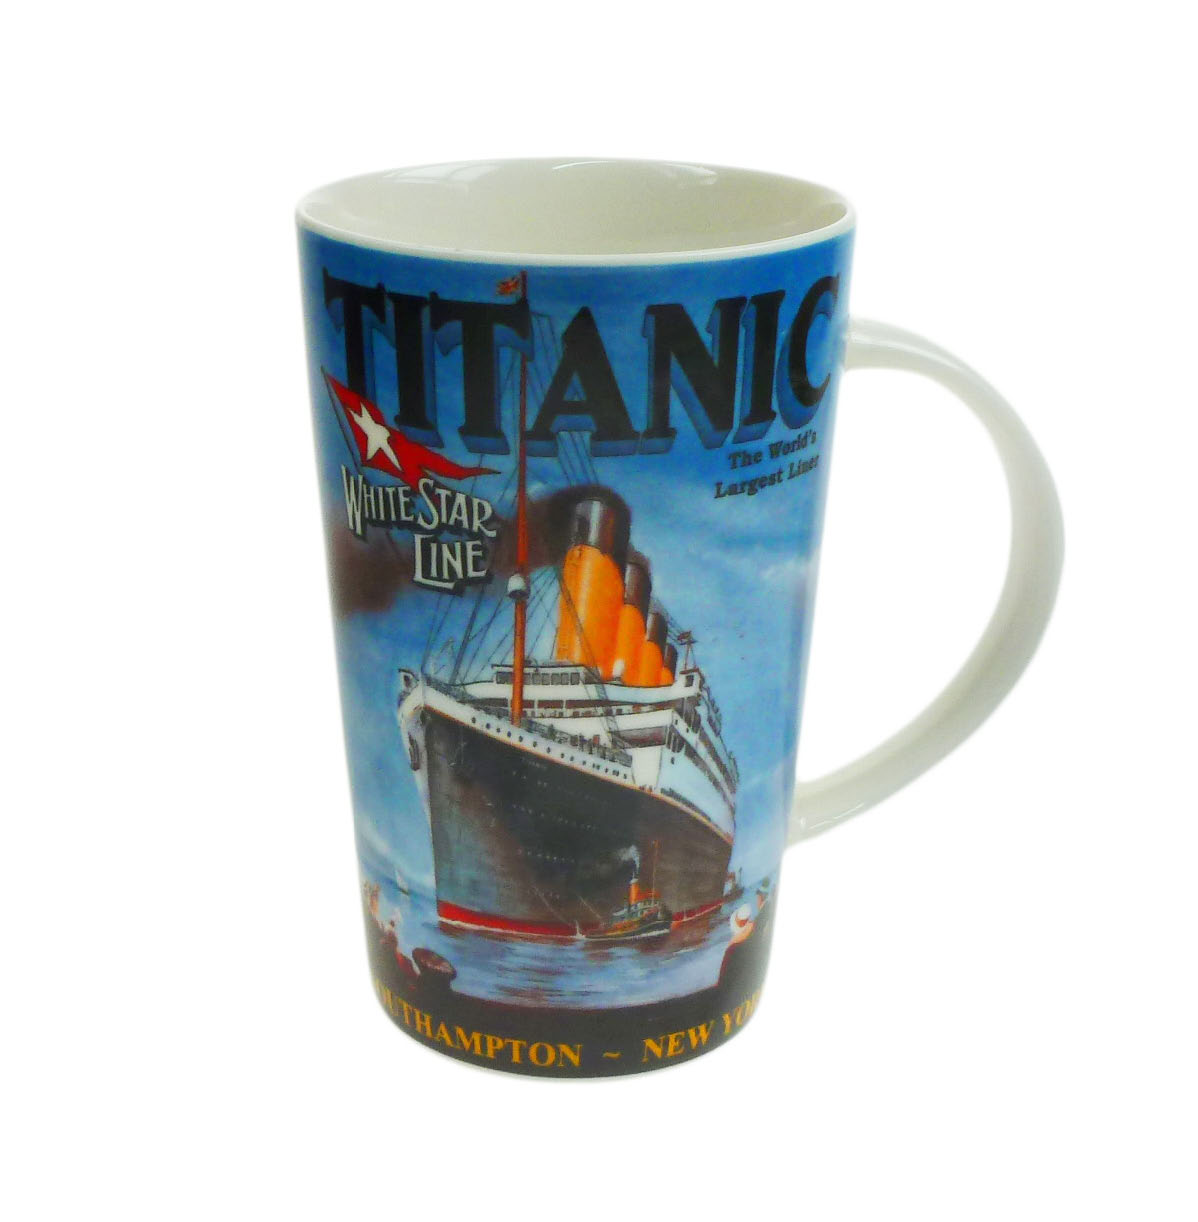 Titanic Ceramic Latte Tall Pictorial Mug